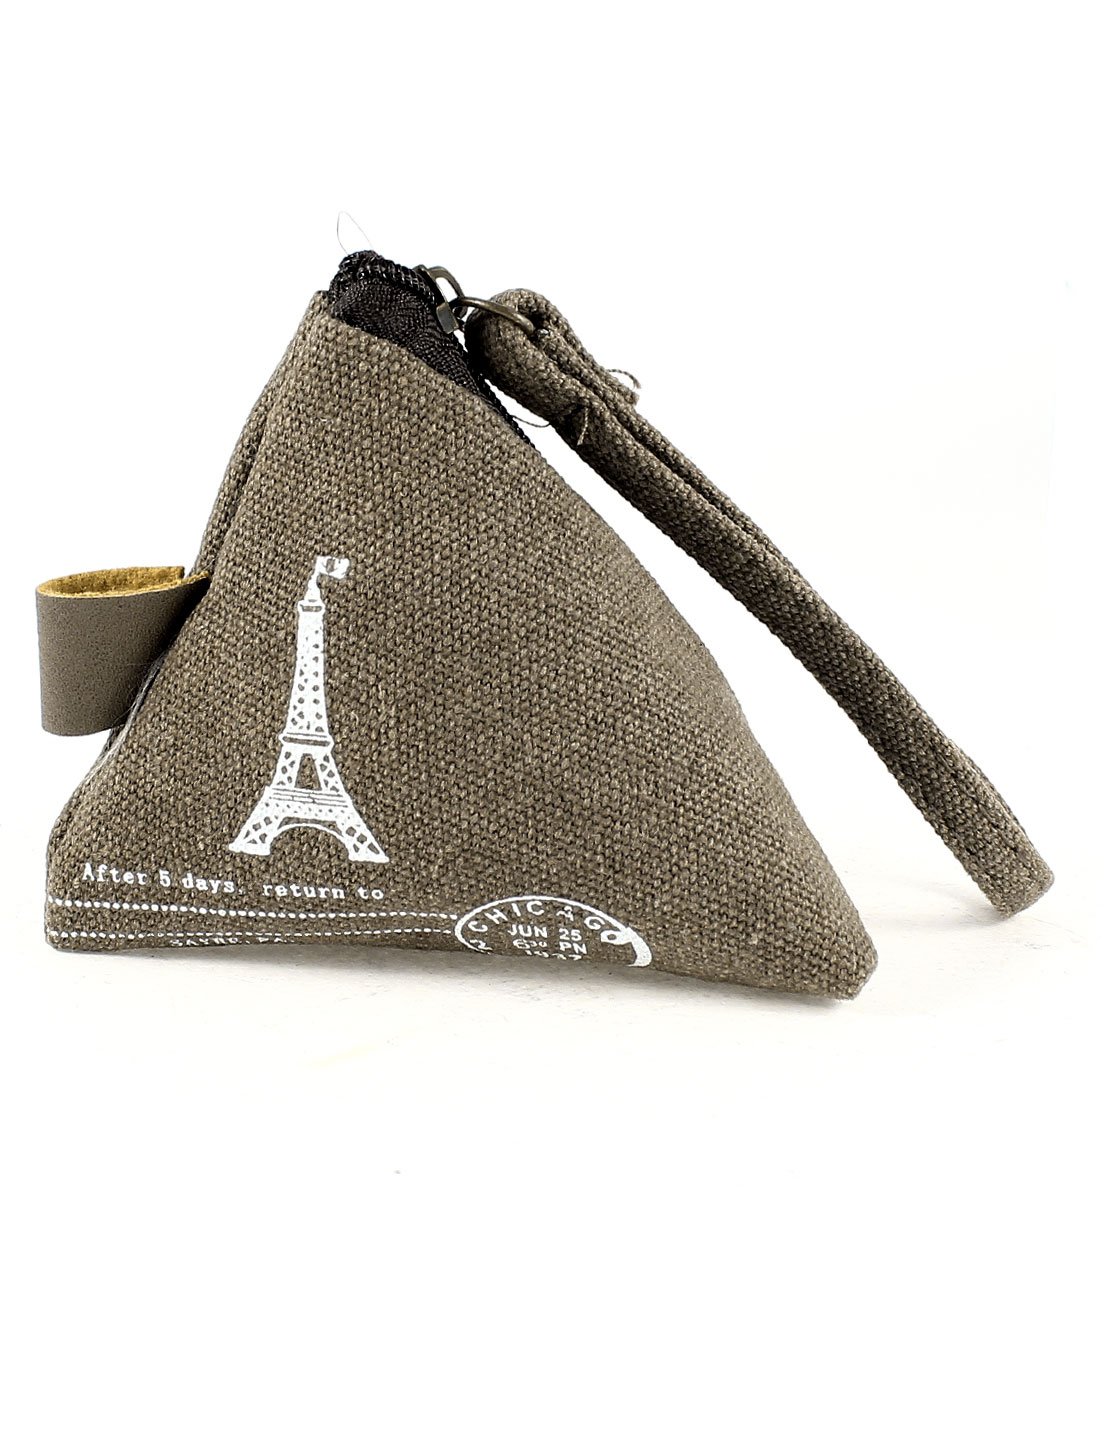 Pyramid Shape Zip Up Eiffel Tower Pattern Cash Coin Money Key Credit Card Purse Bag Coffee Color for Lady